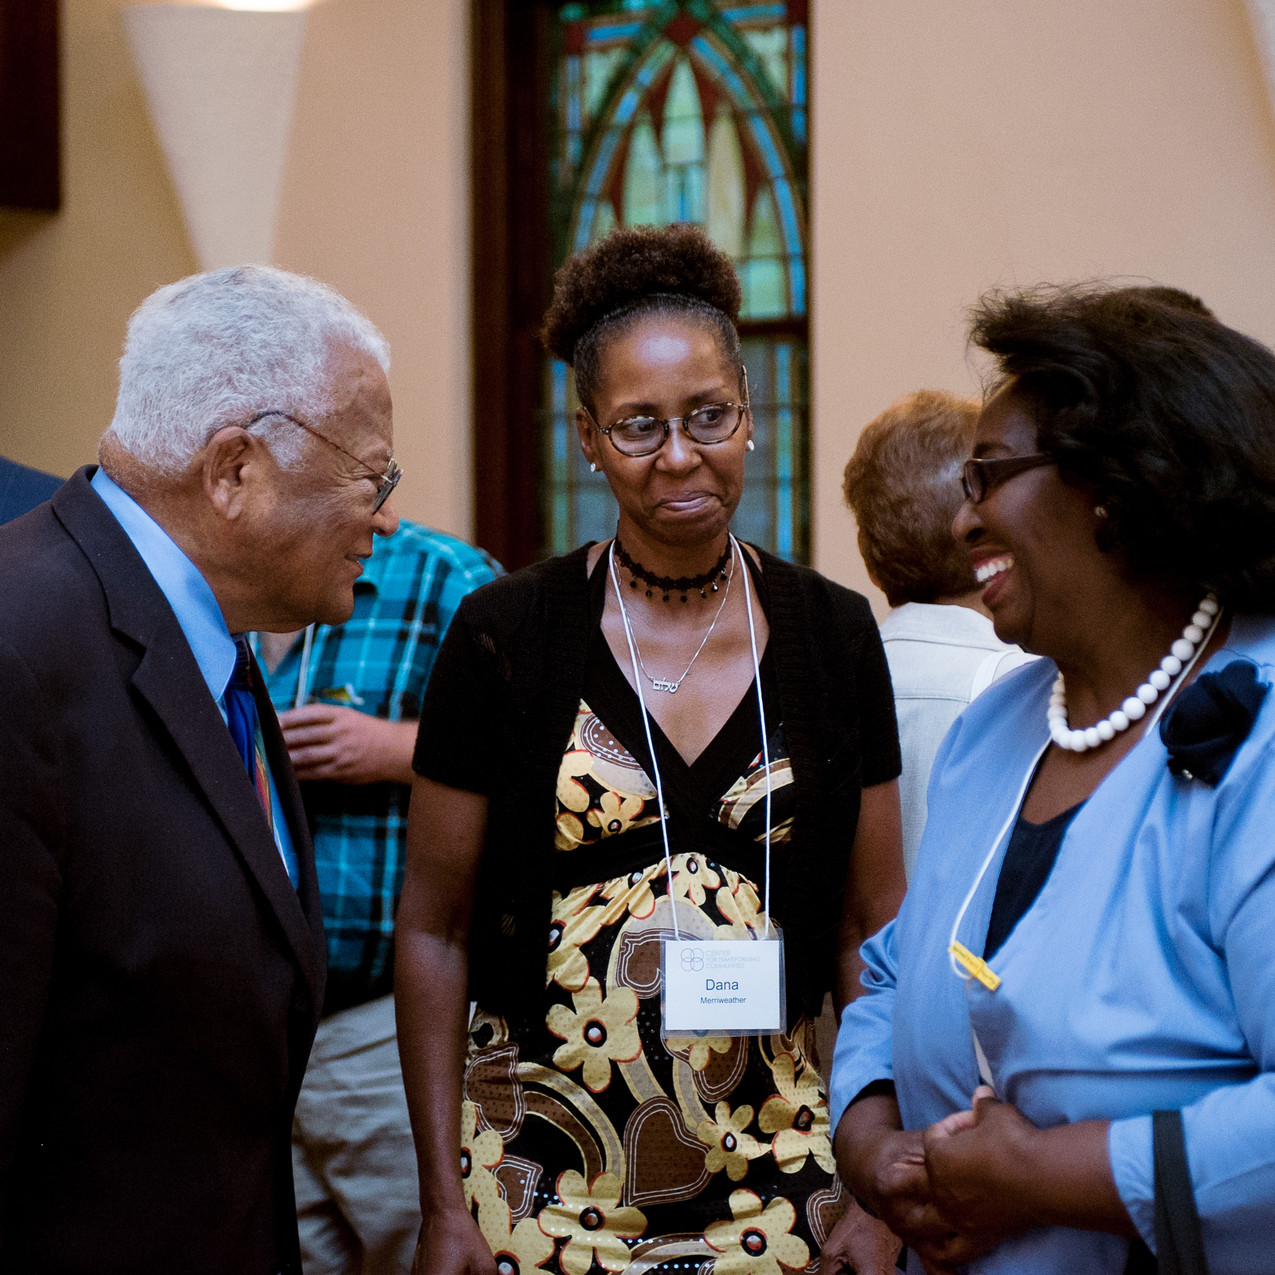 James Lawson visits with Shalom Zone leaders Dana Merriweather and Judy Conway.